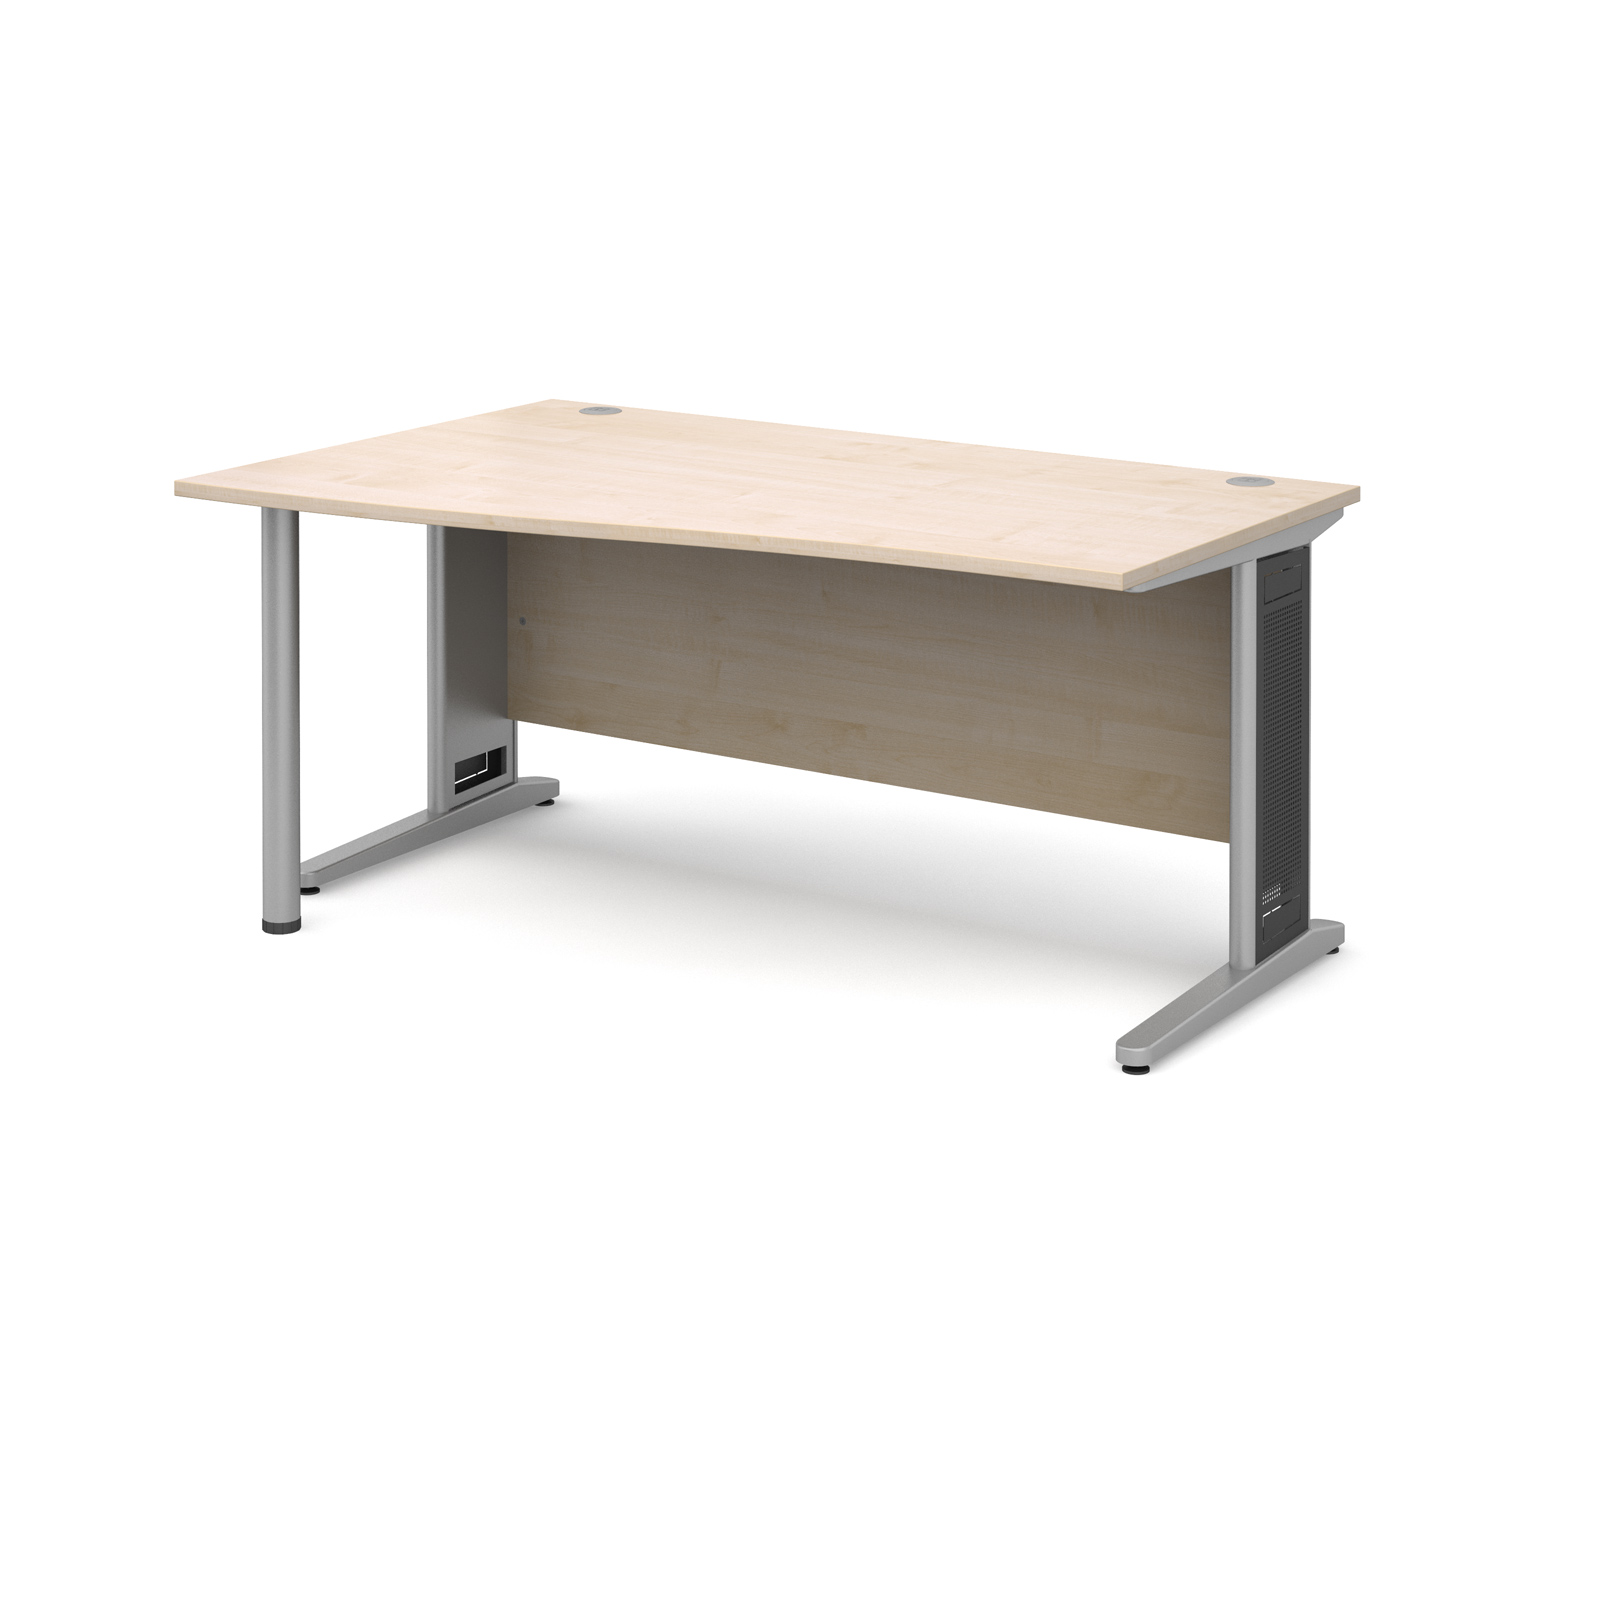 Largo left hand wave desk 1600mm - silver cantilever frame with removable grill, maple top